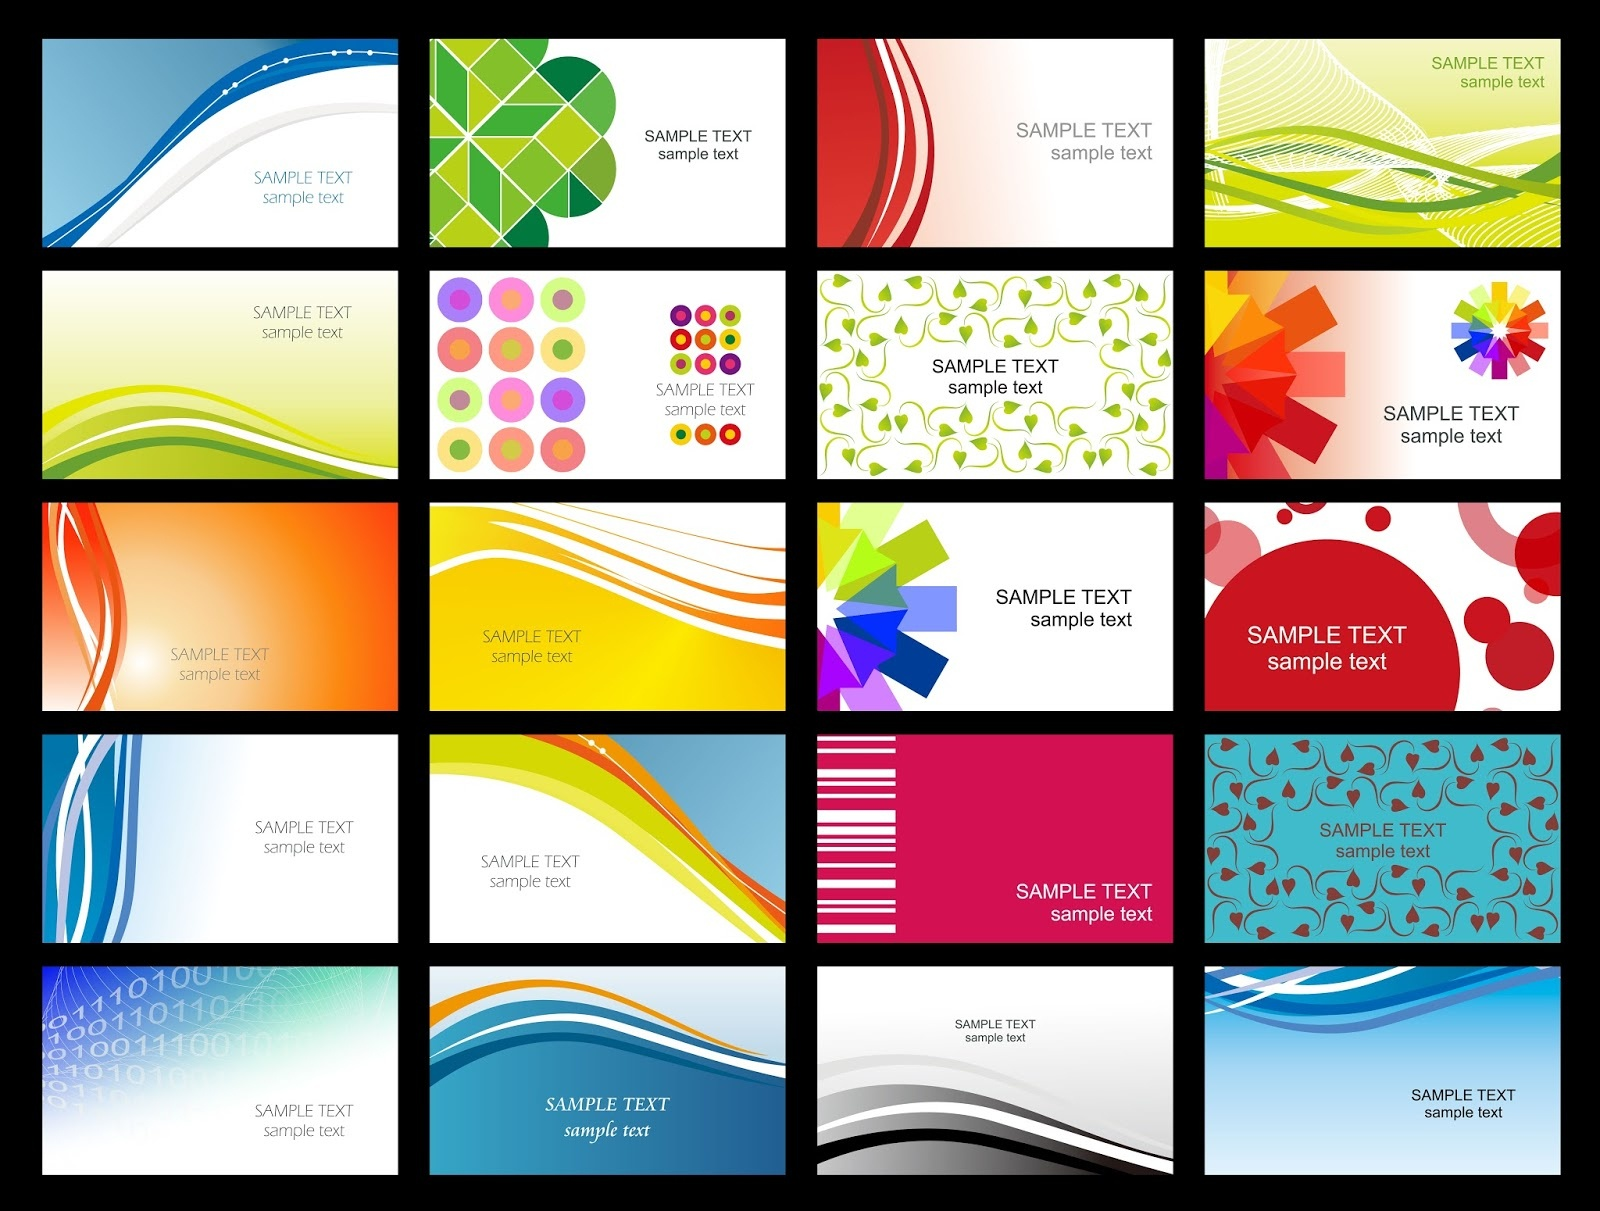 Printable Business Card Template - Business Card Tips - Free Printable Business Card Templates For Word